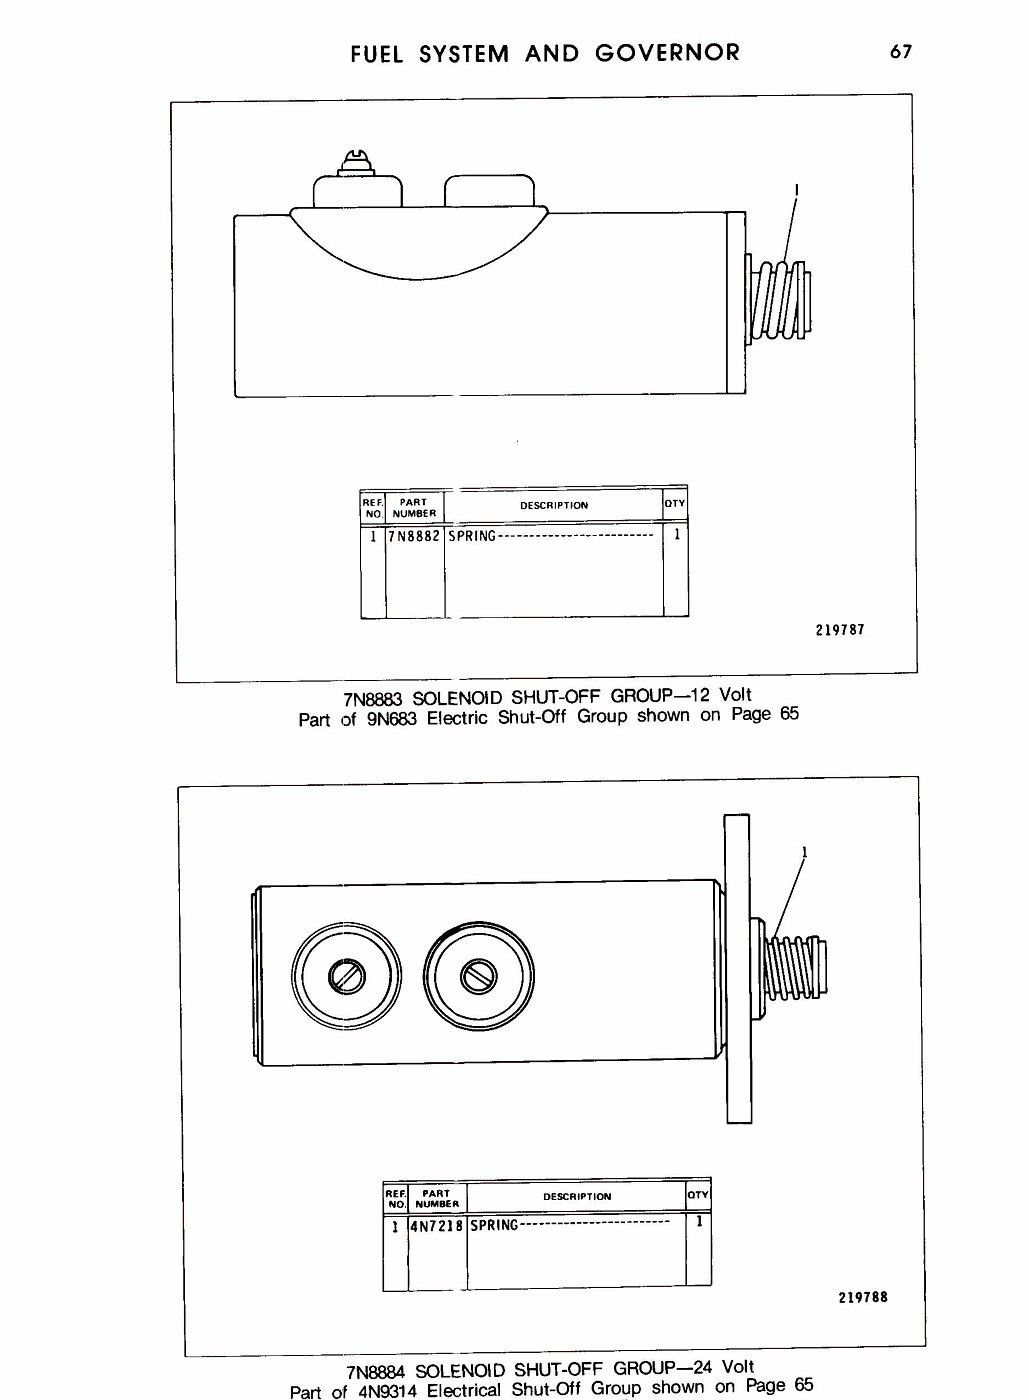 hight resolution of cat caterpillar 3208 engine repair service parts operation manual cat truck engine parts manual please find the image you need cluthes for chevrolet